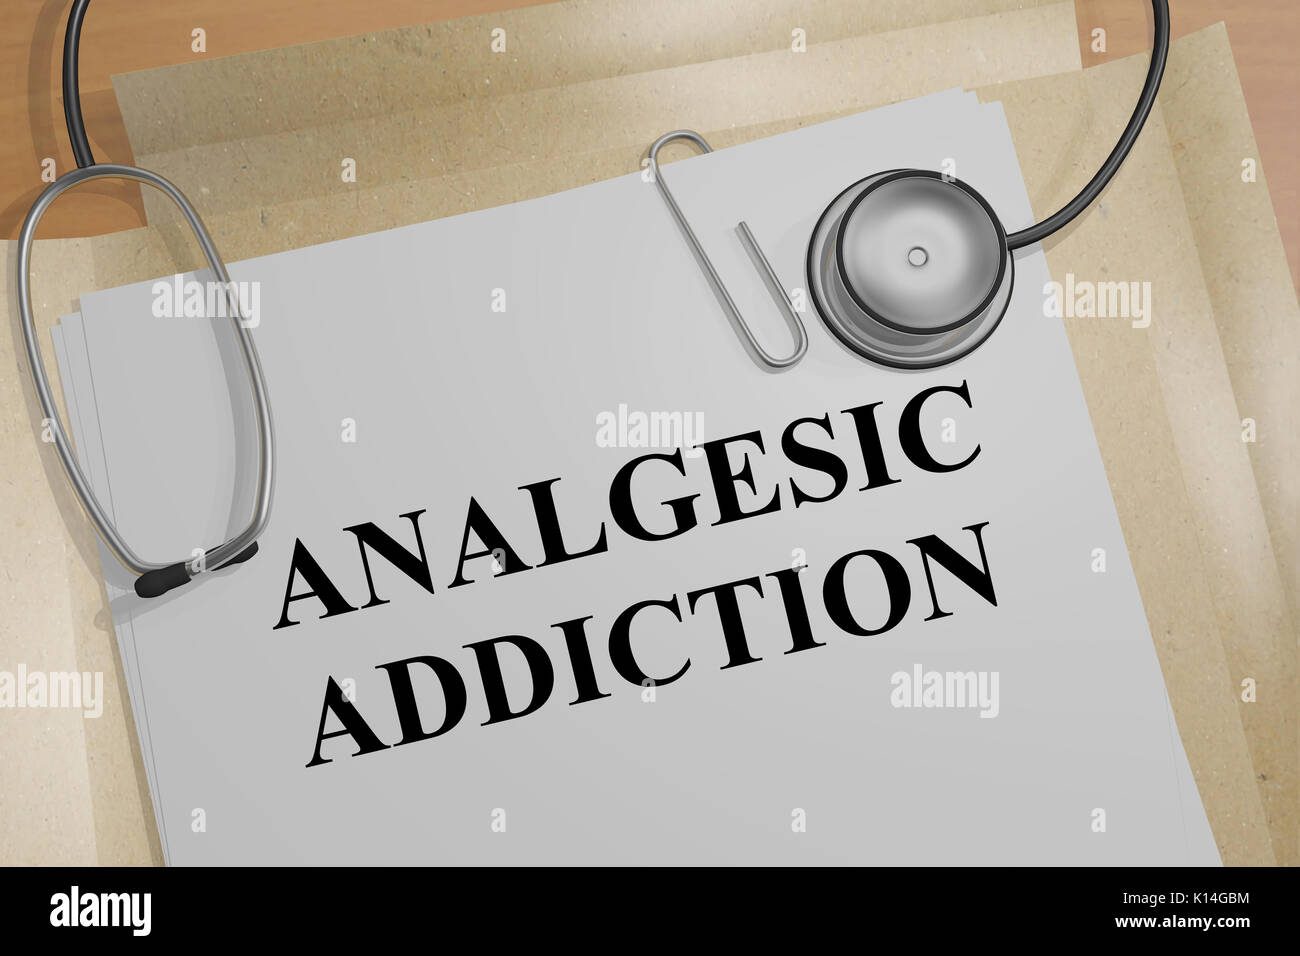 3D illustration of 'ANALGESIC ADDICTION' title on a medical document - Stock Image